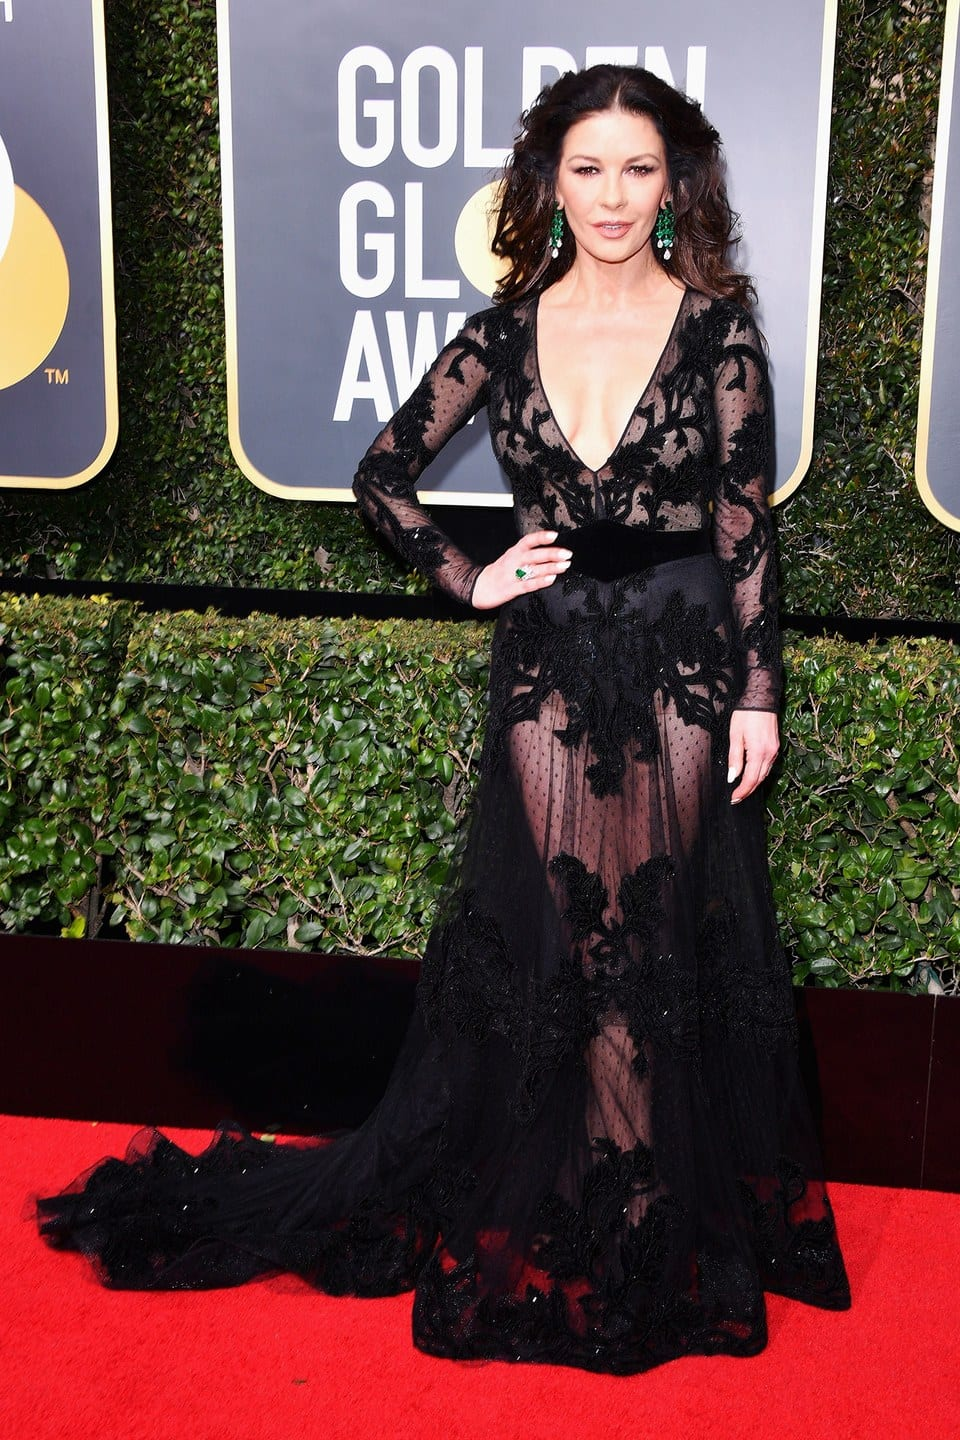 golden globes 2018, best dressed golden globes, Catherine Zeta Jones